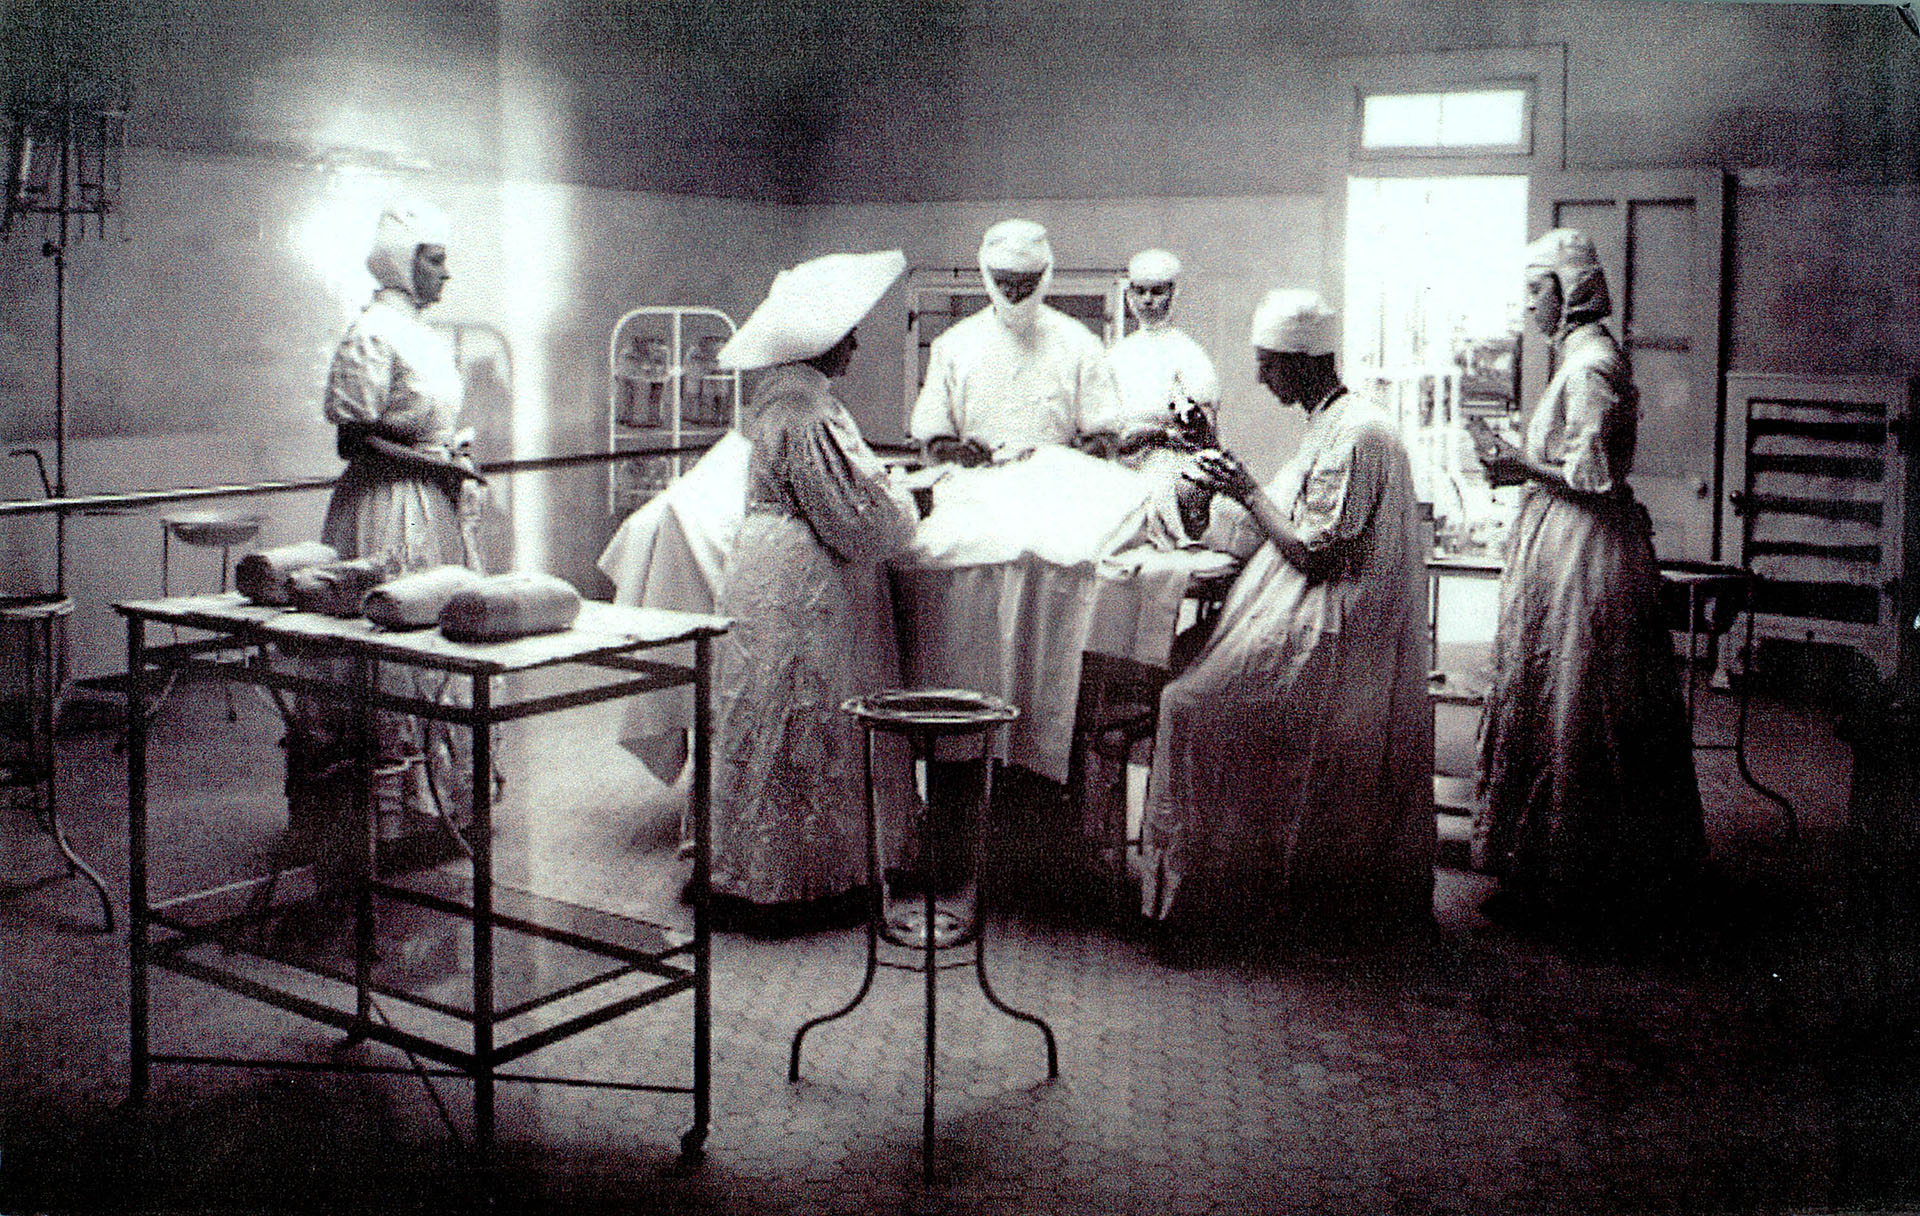 Operating room, Los Angeles Infirmary, 1908. The nurses and doctors are assisted by a sister wearing her wing-like wimple.